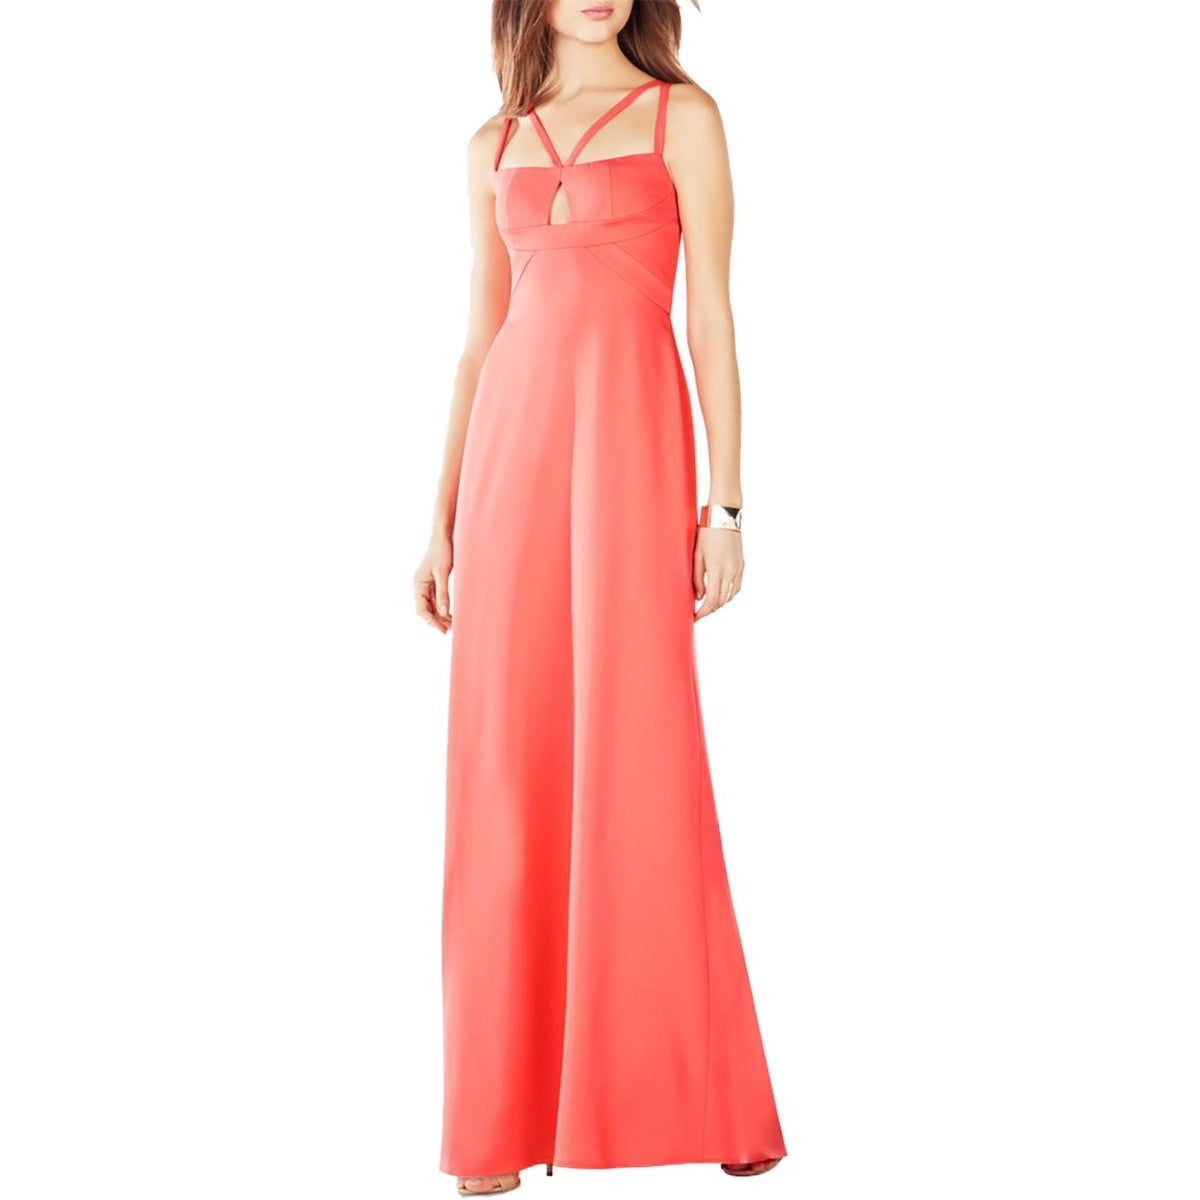 BCBG Max Azria Dresses | Find Great Women\'s Clothing Deals Shopping ...